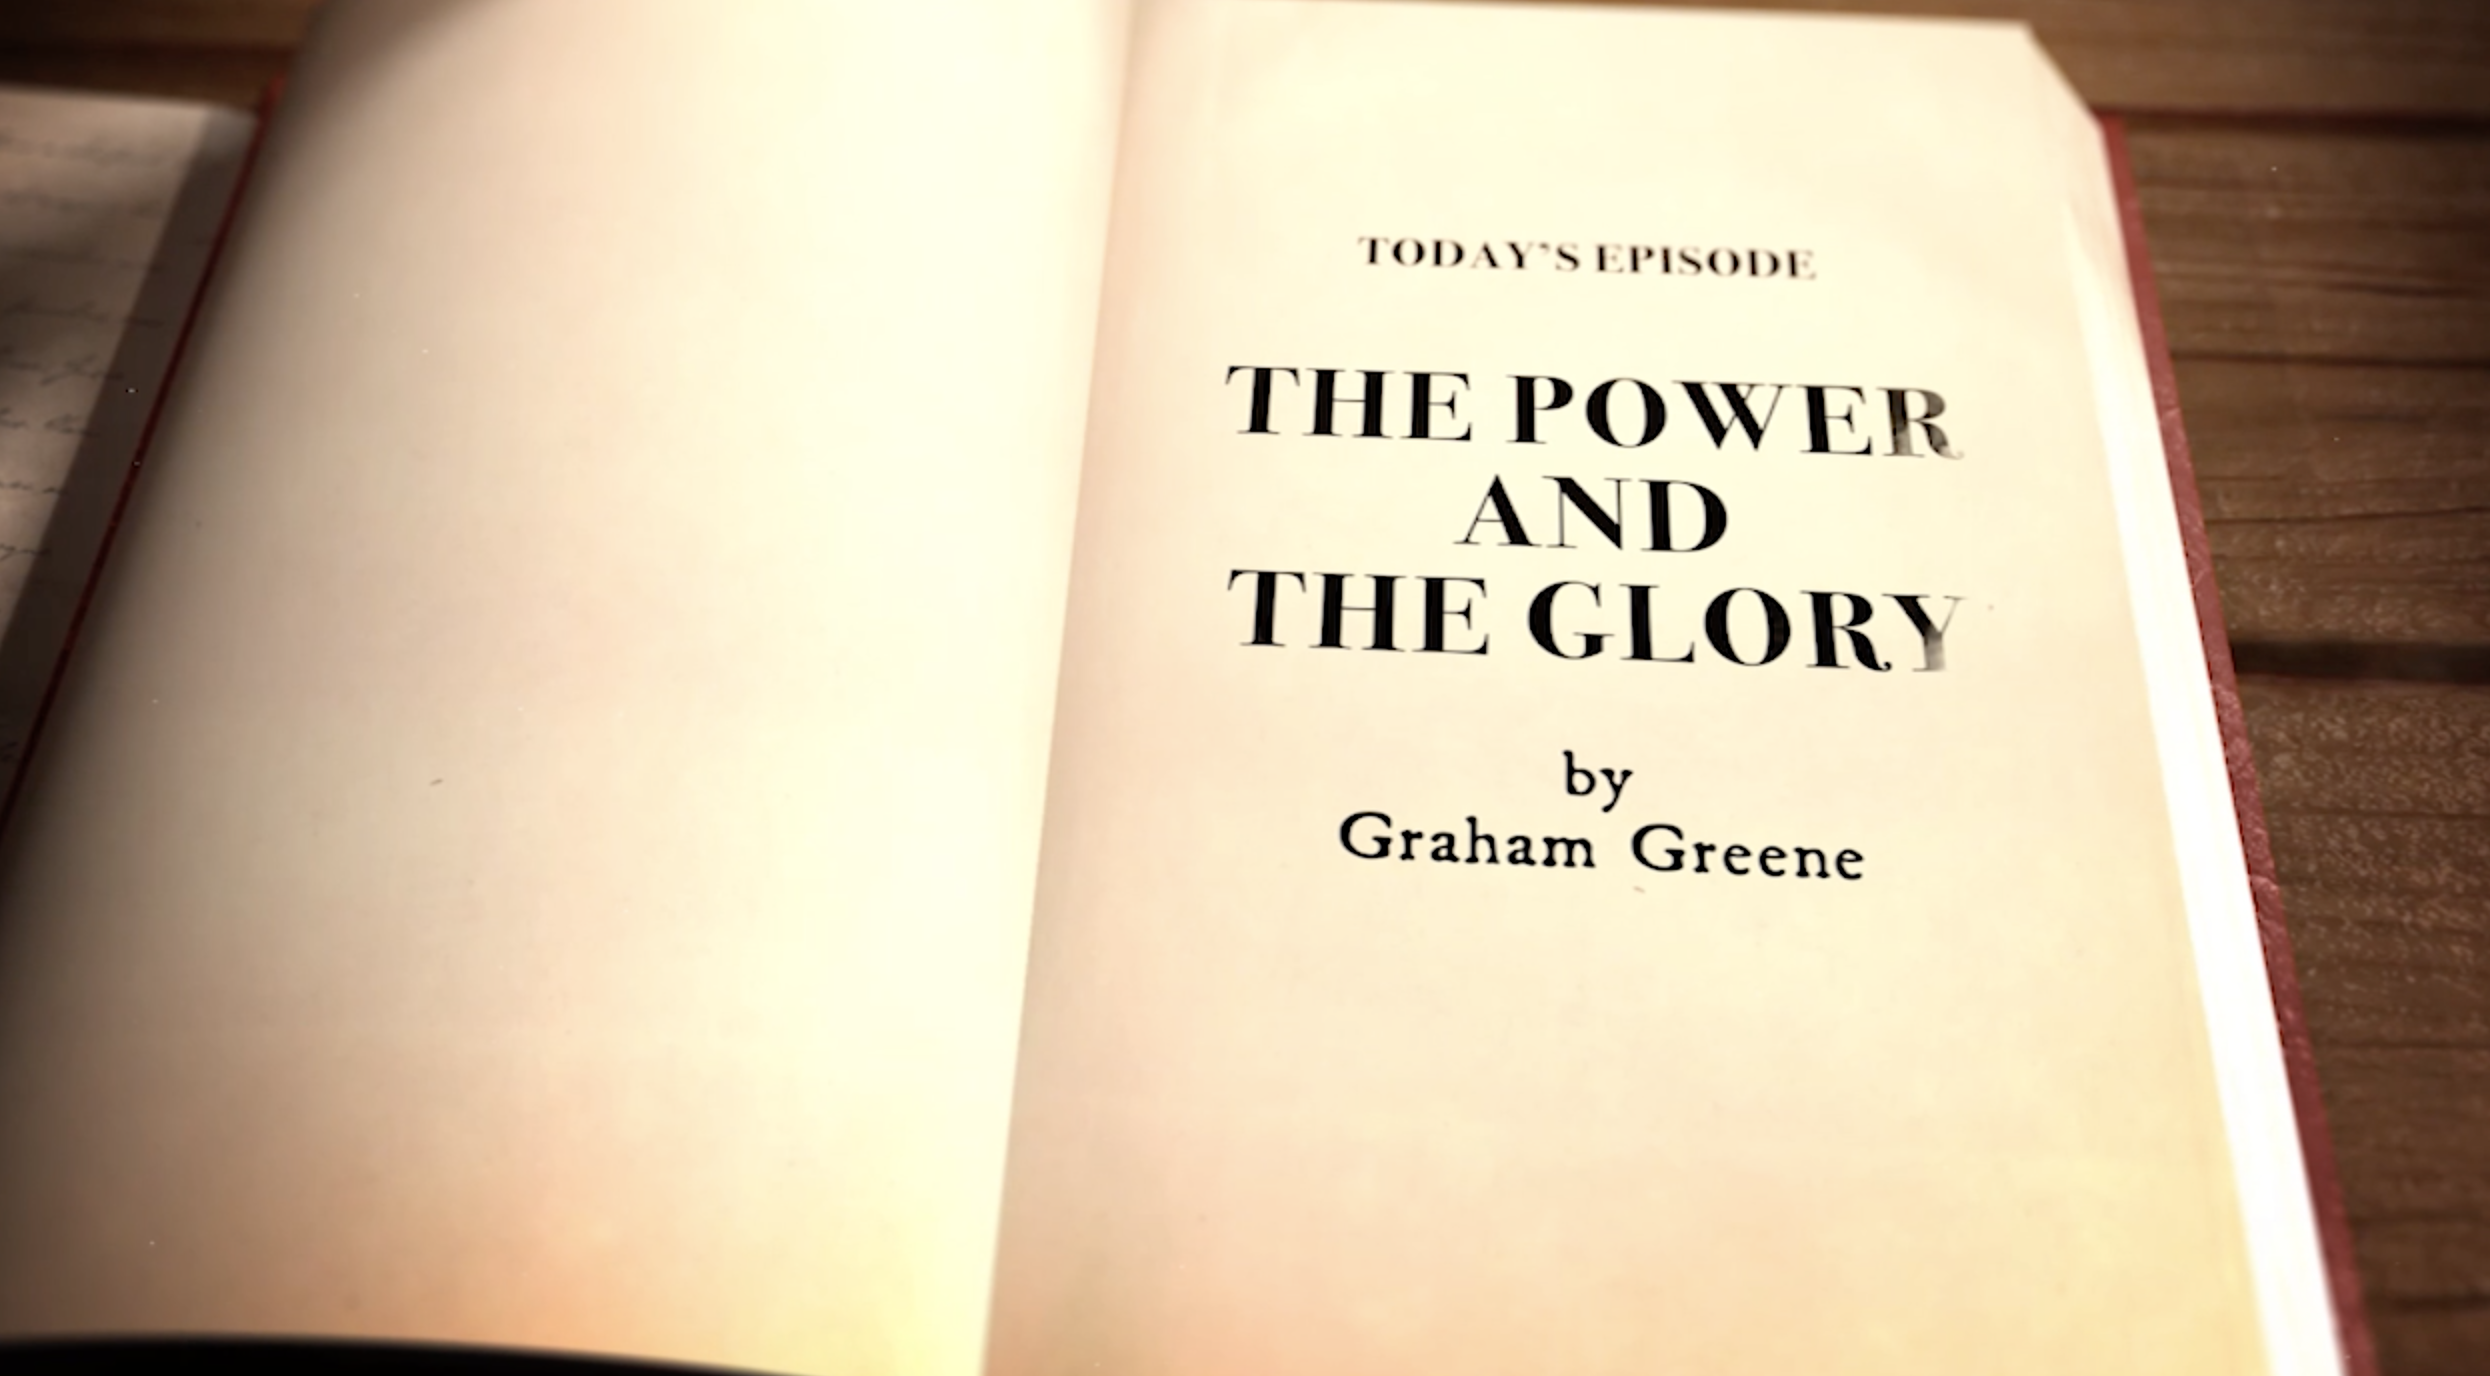 an analysis of the power and the glory by graham greene In his penetrating novel the power and the glory, graham greene explores corruption and atonement through a priest and the people he encounters in the 1930s one mexican state has outlawed the church, naming it a source of greed and debauchery.